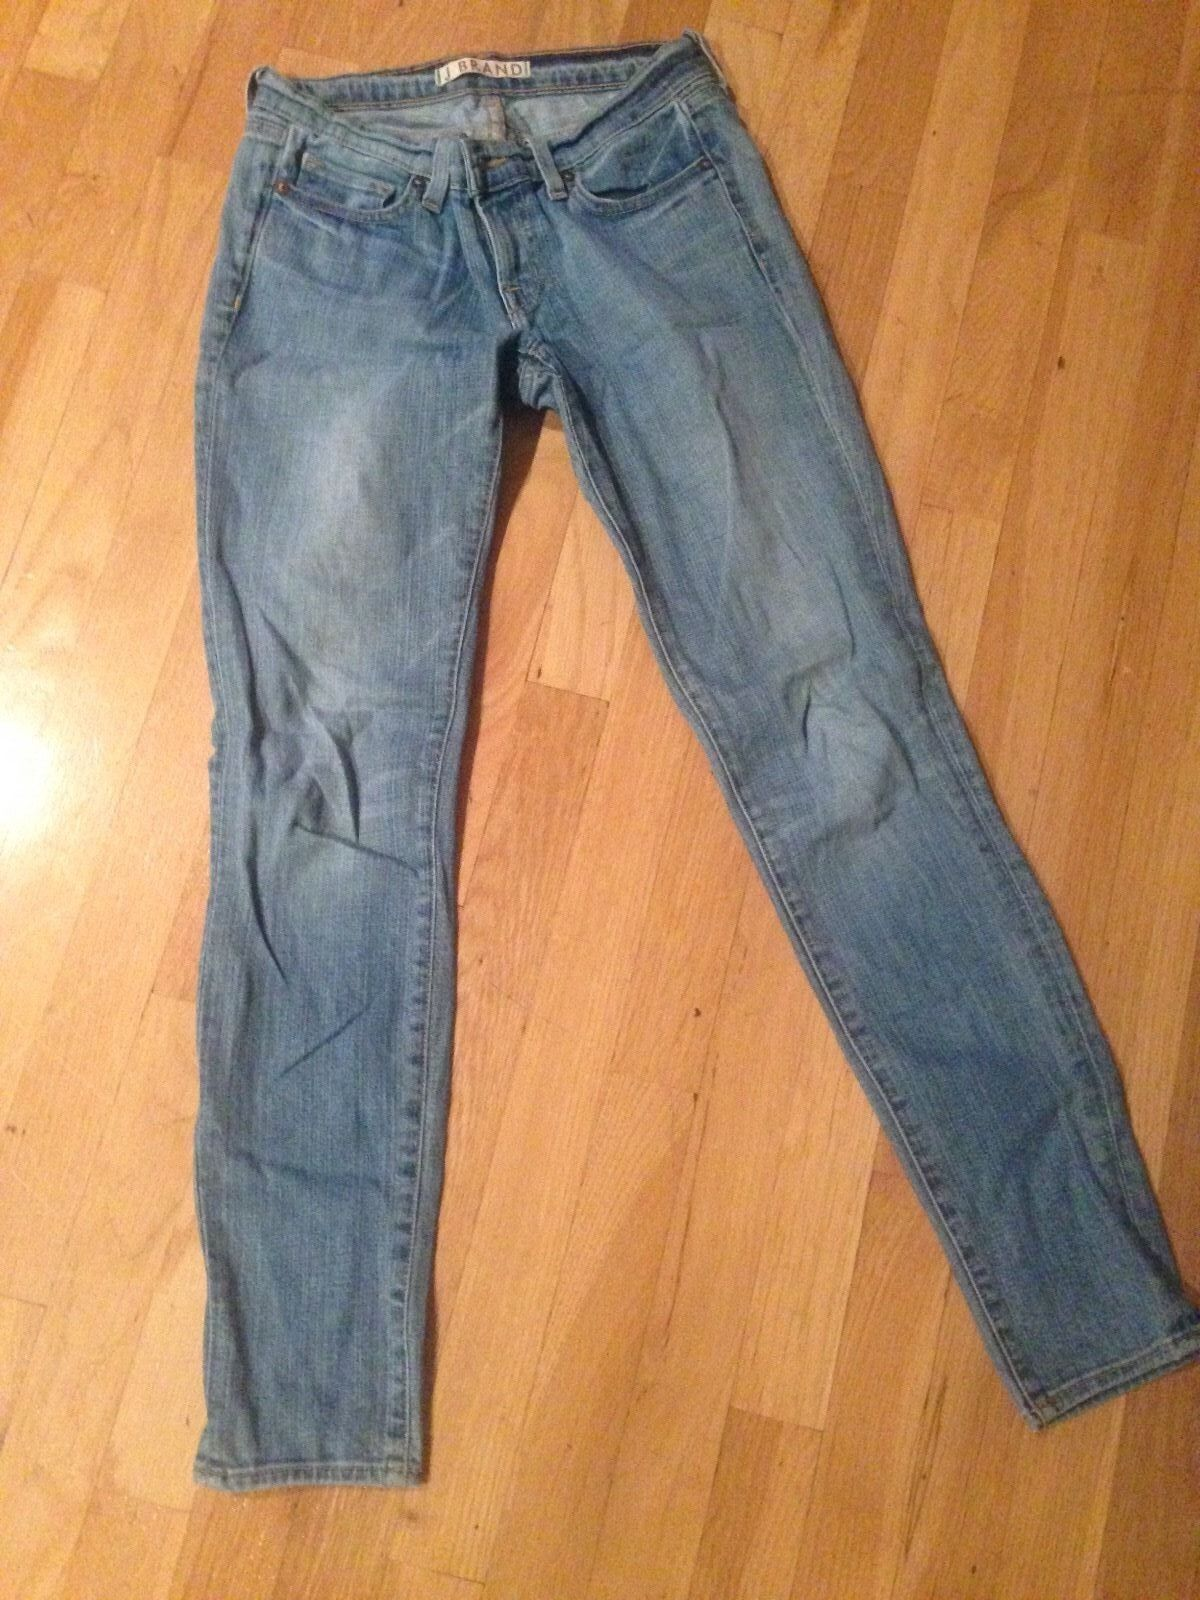 J Brand 910 low-rise skinny leg jeans - light wash, sz 26